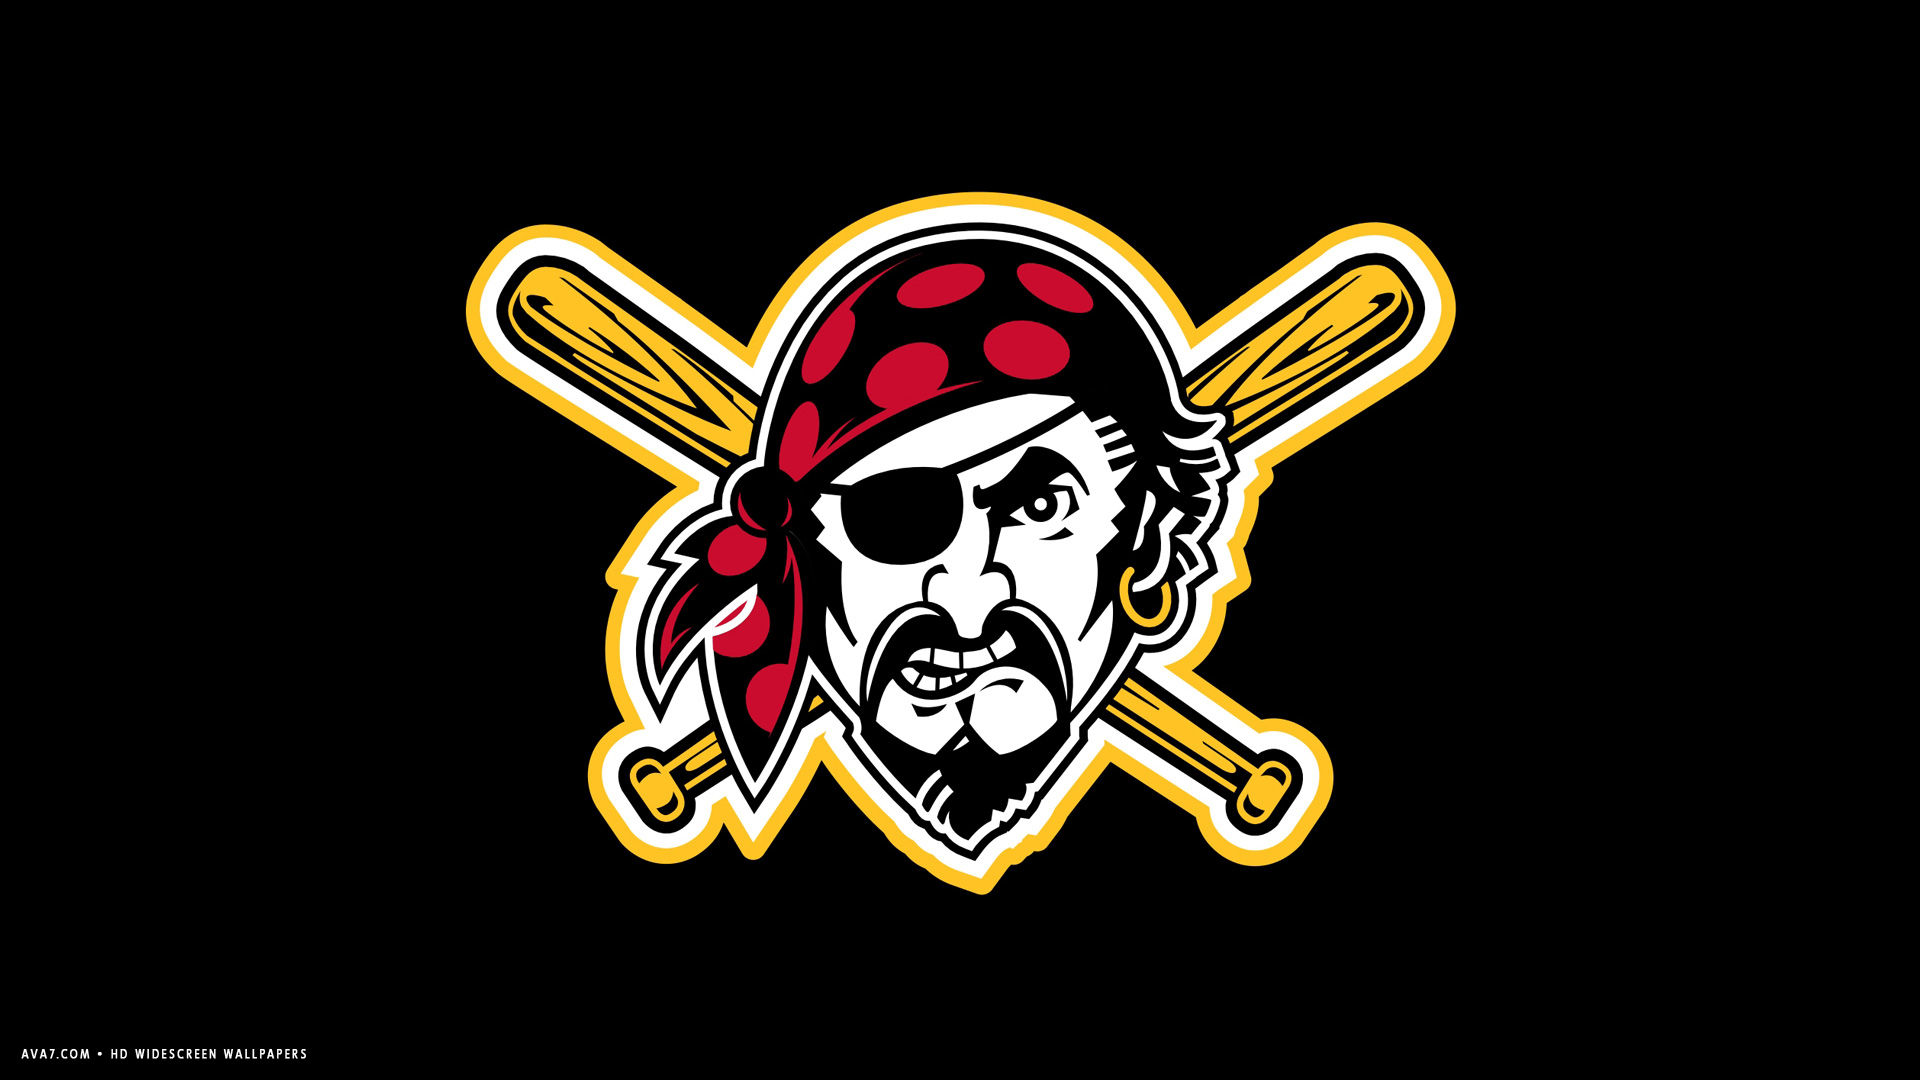 pittsburgh pirates mlb baseball team hd widescreen wallpaper